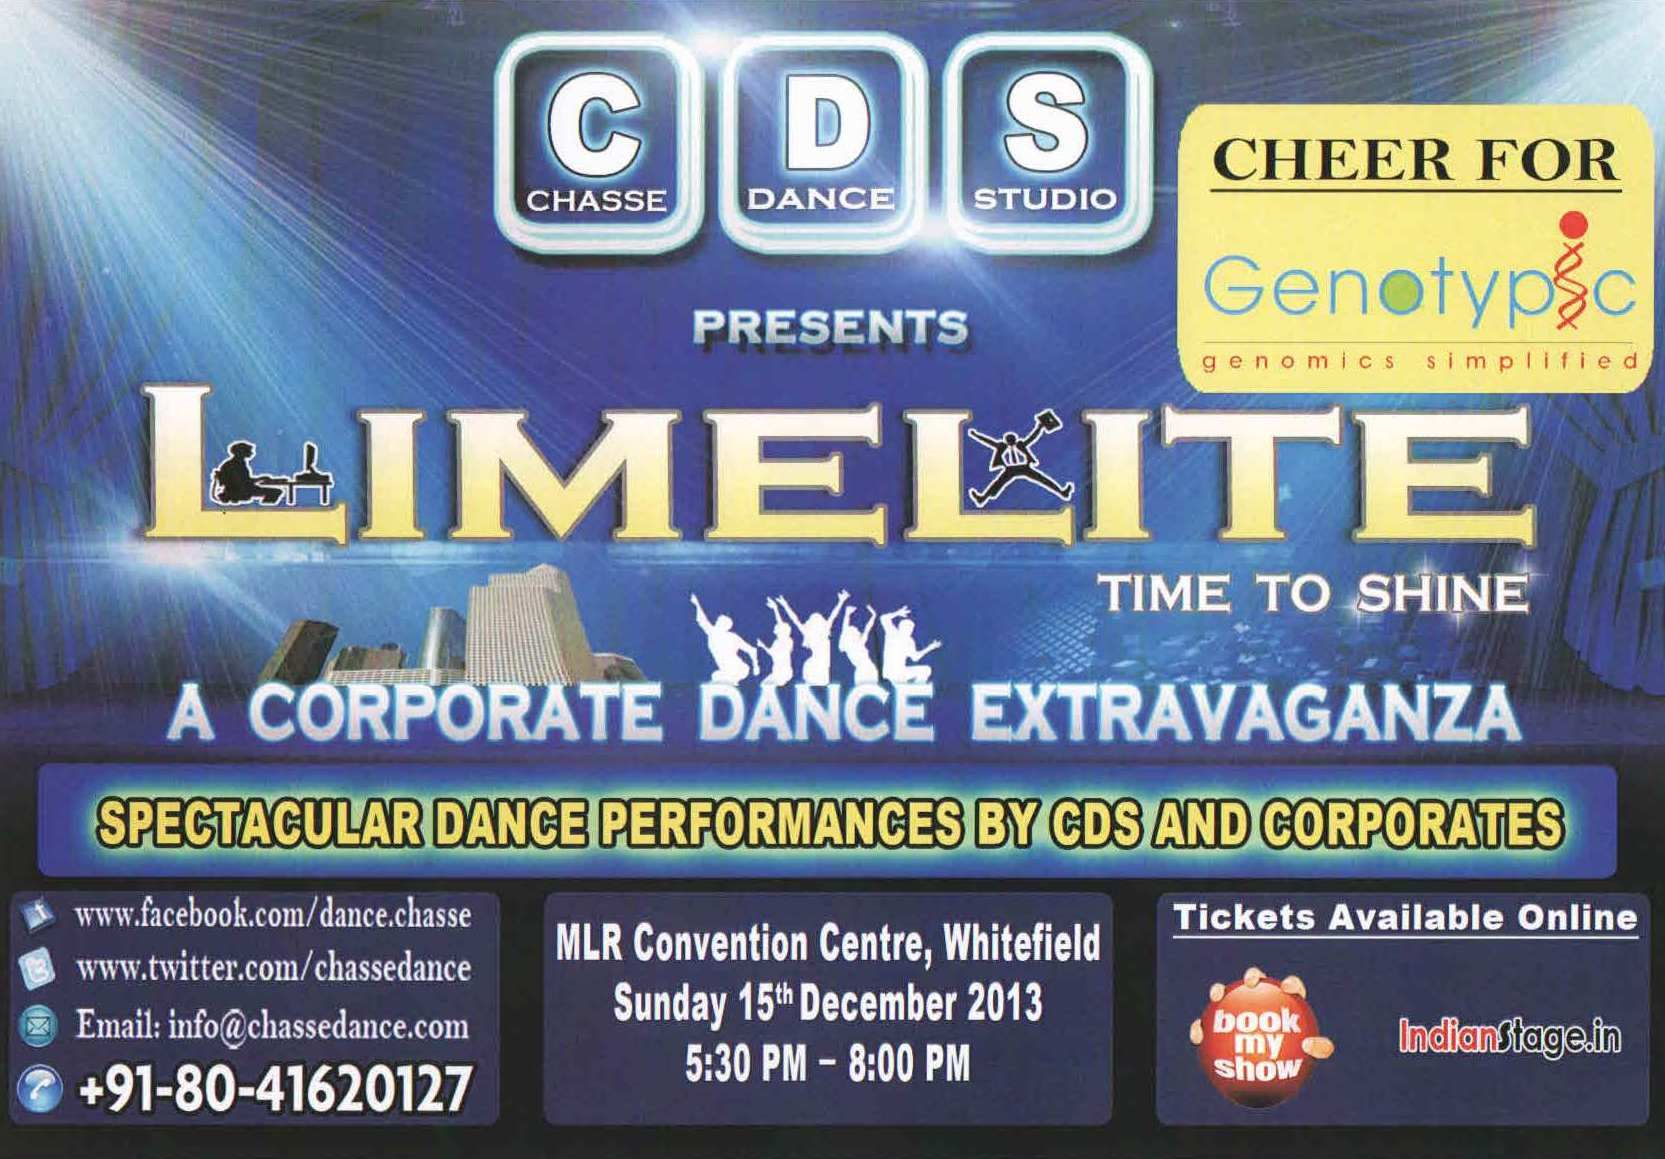 Genotypic participates in the LIMELITE A Corporate Dance